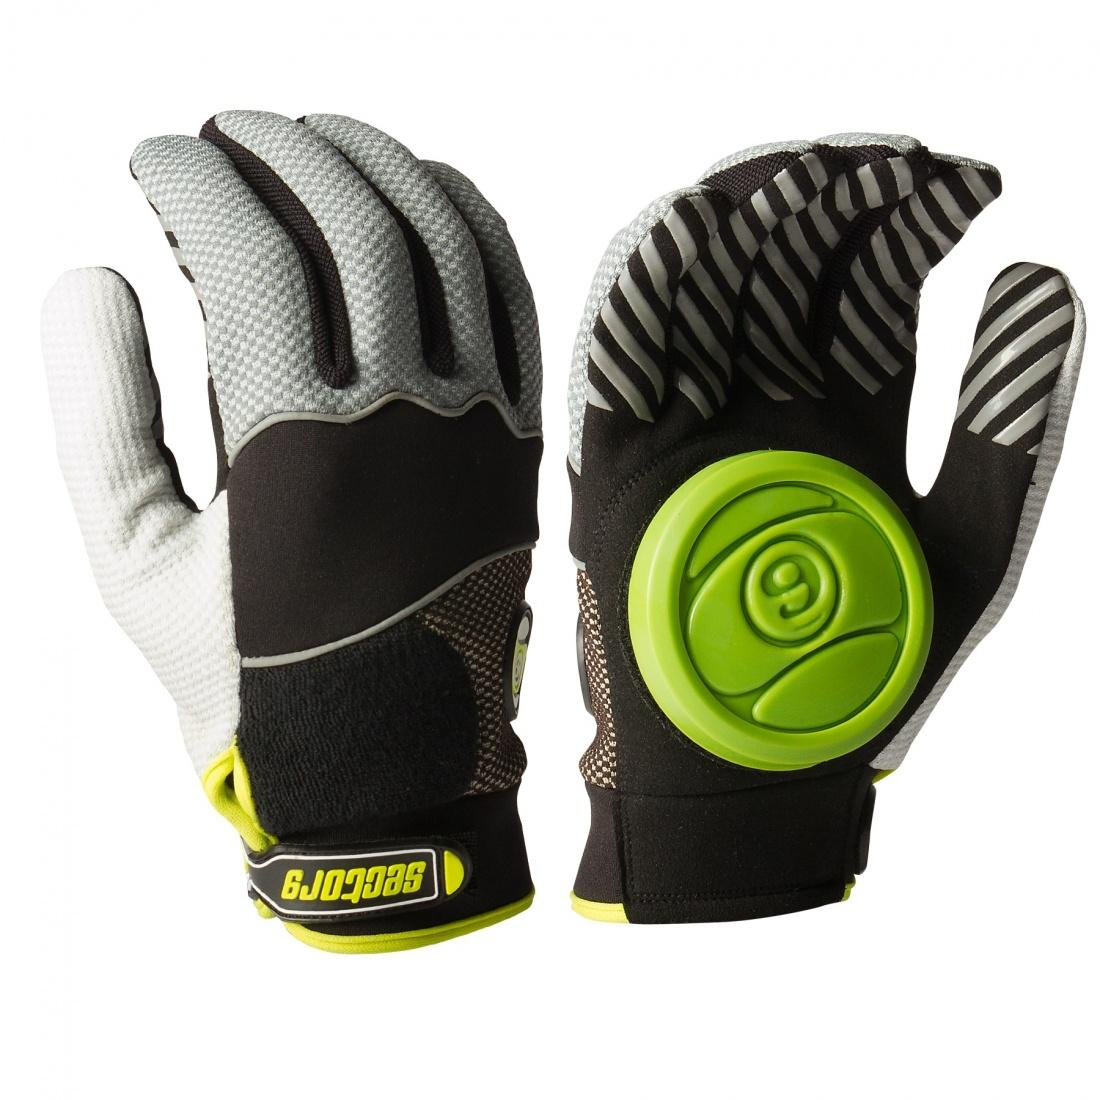 Перчатки APEX GLOVES (S/M, Black, , SS14) от Board Shop №1